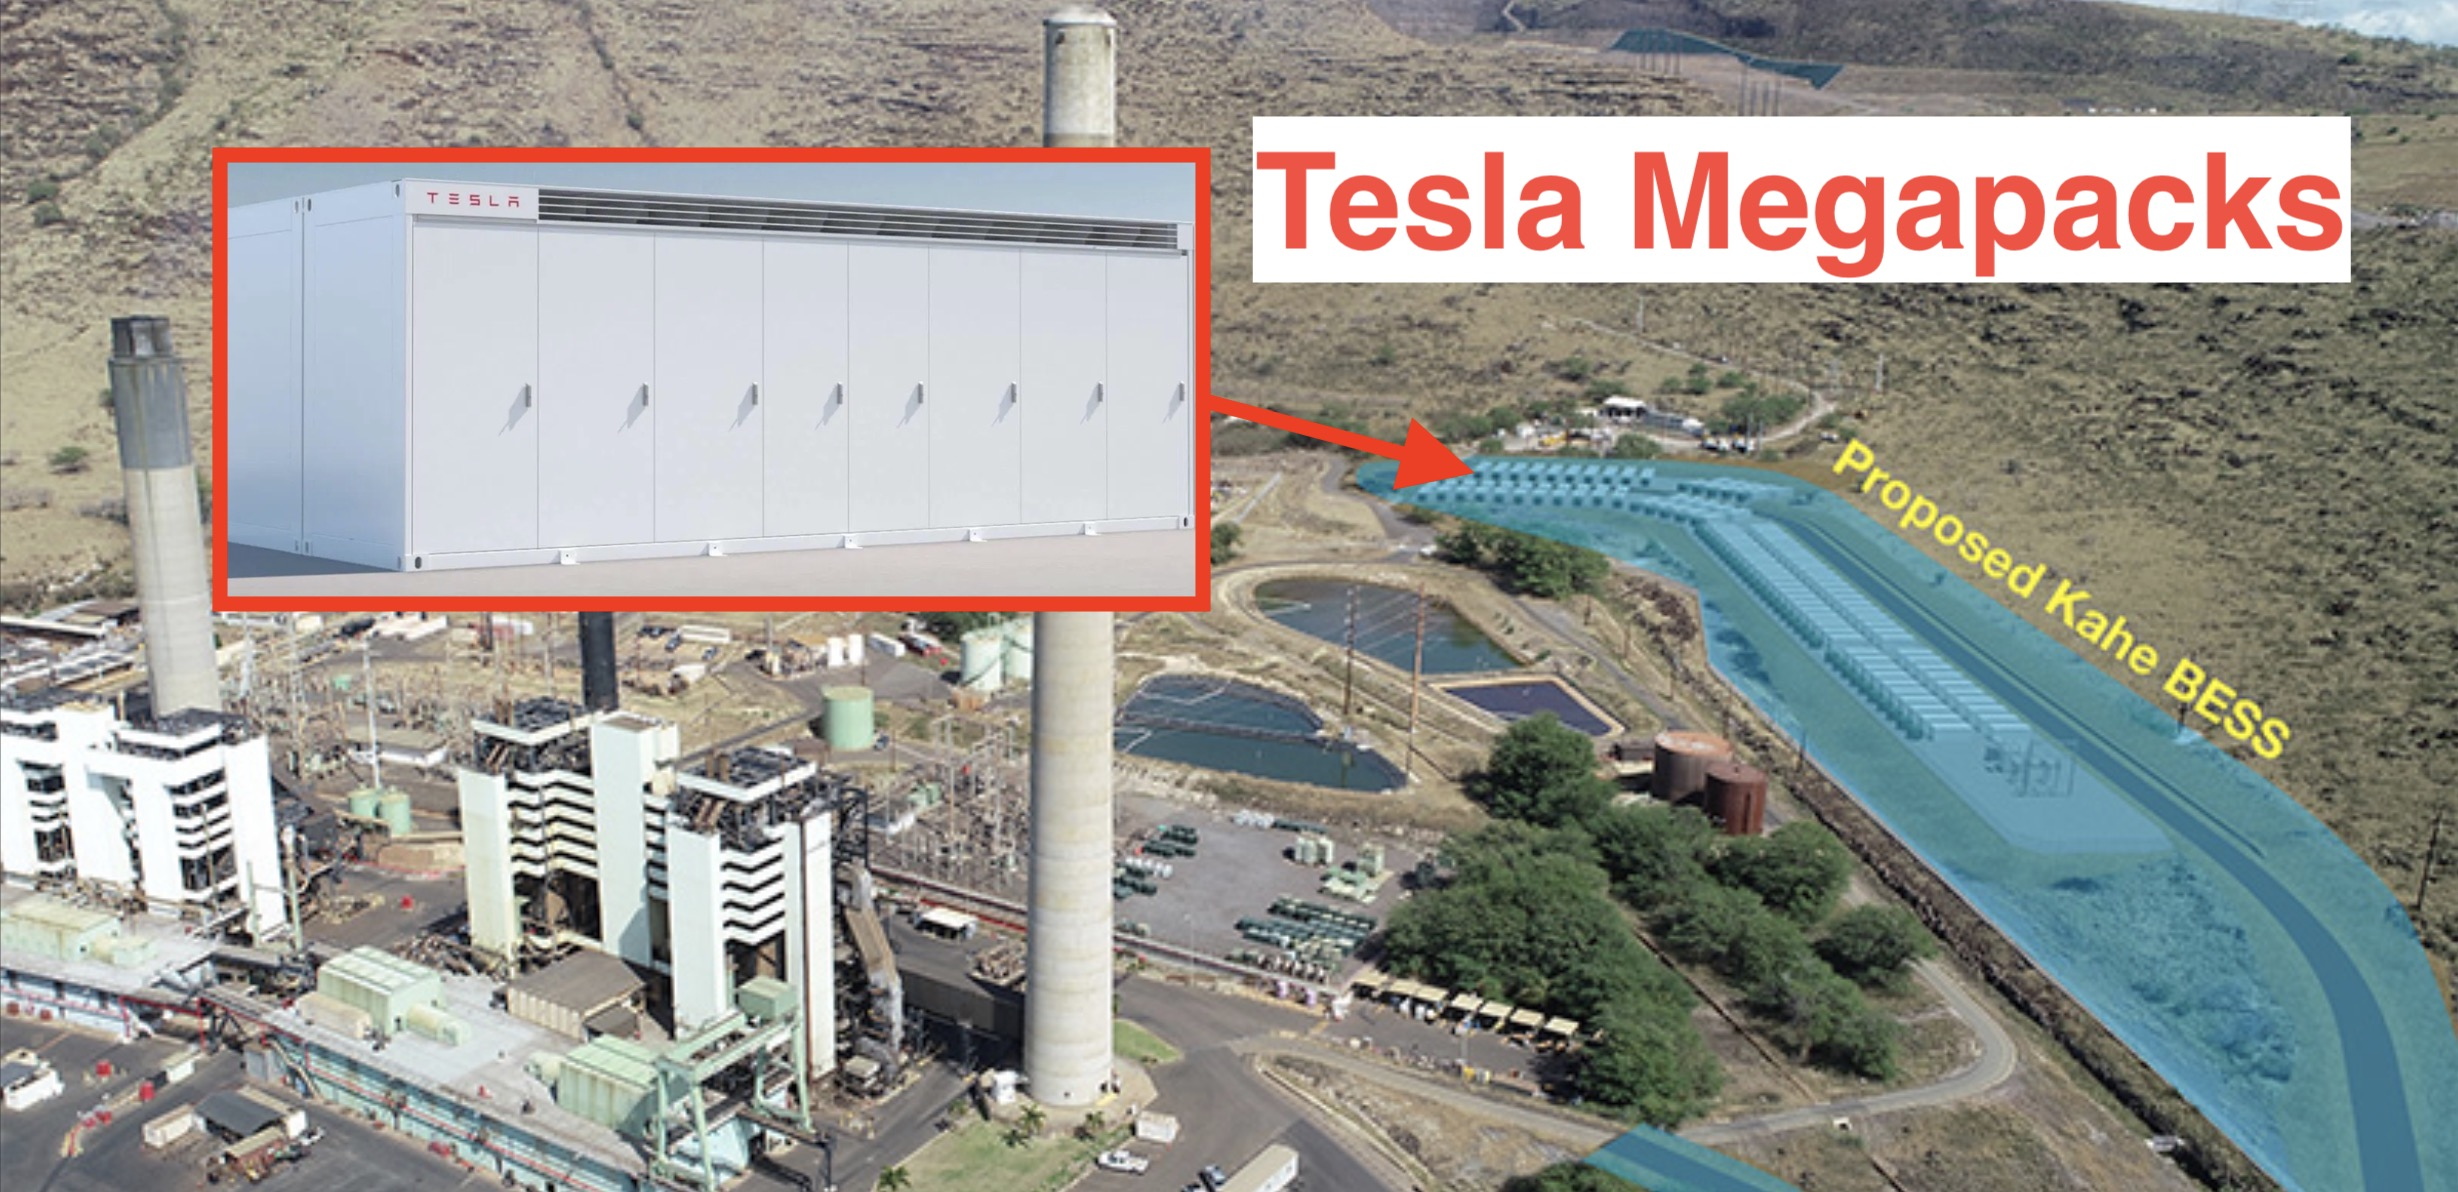 Tesla bids to deploy one of the biggest batteries in the world with 244 Megapacks in Hawaii - Electrek